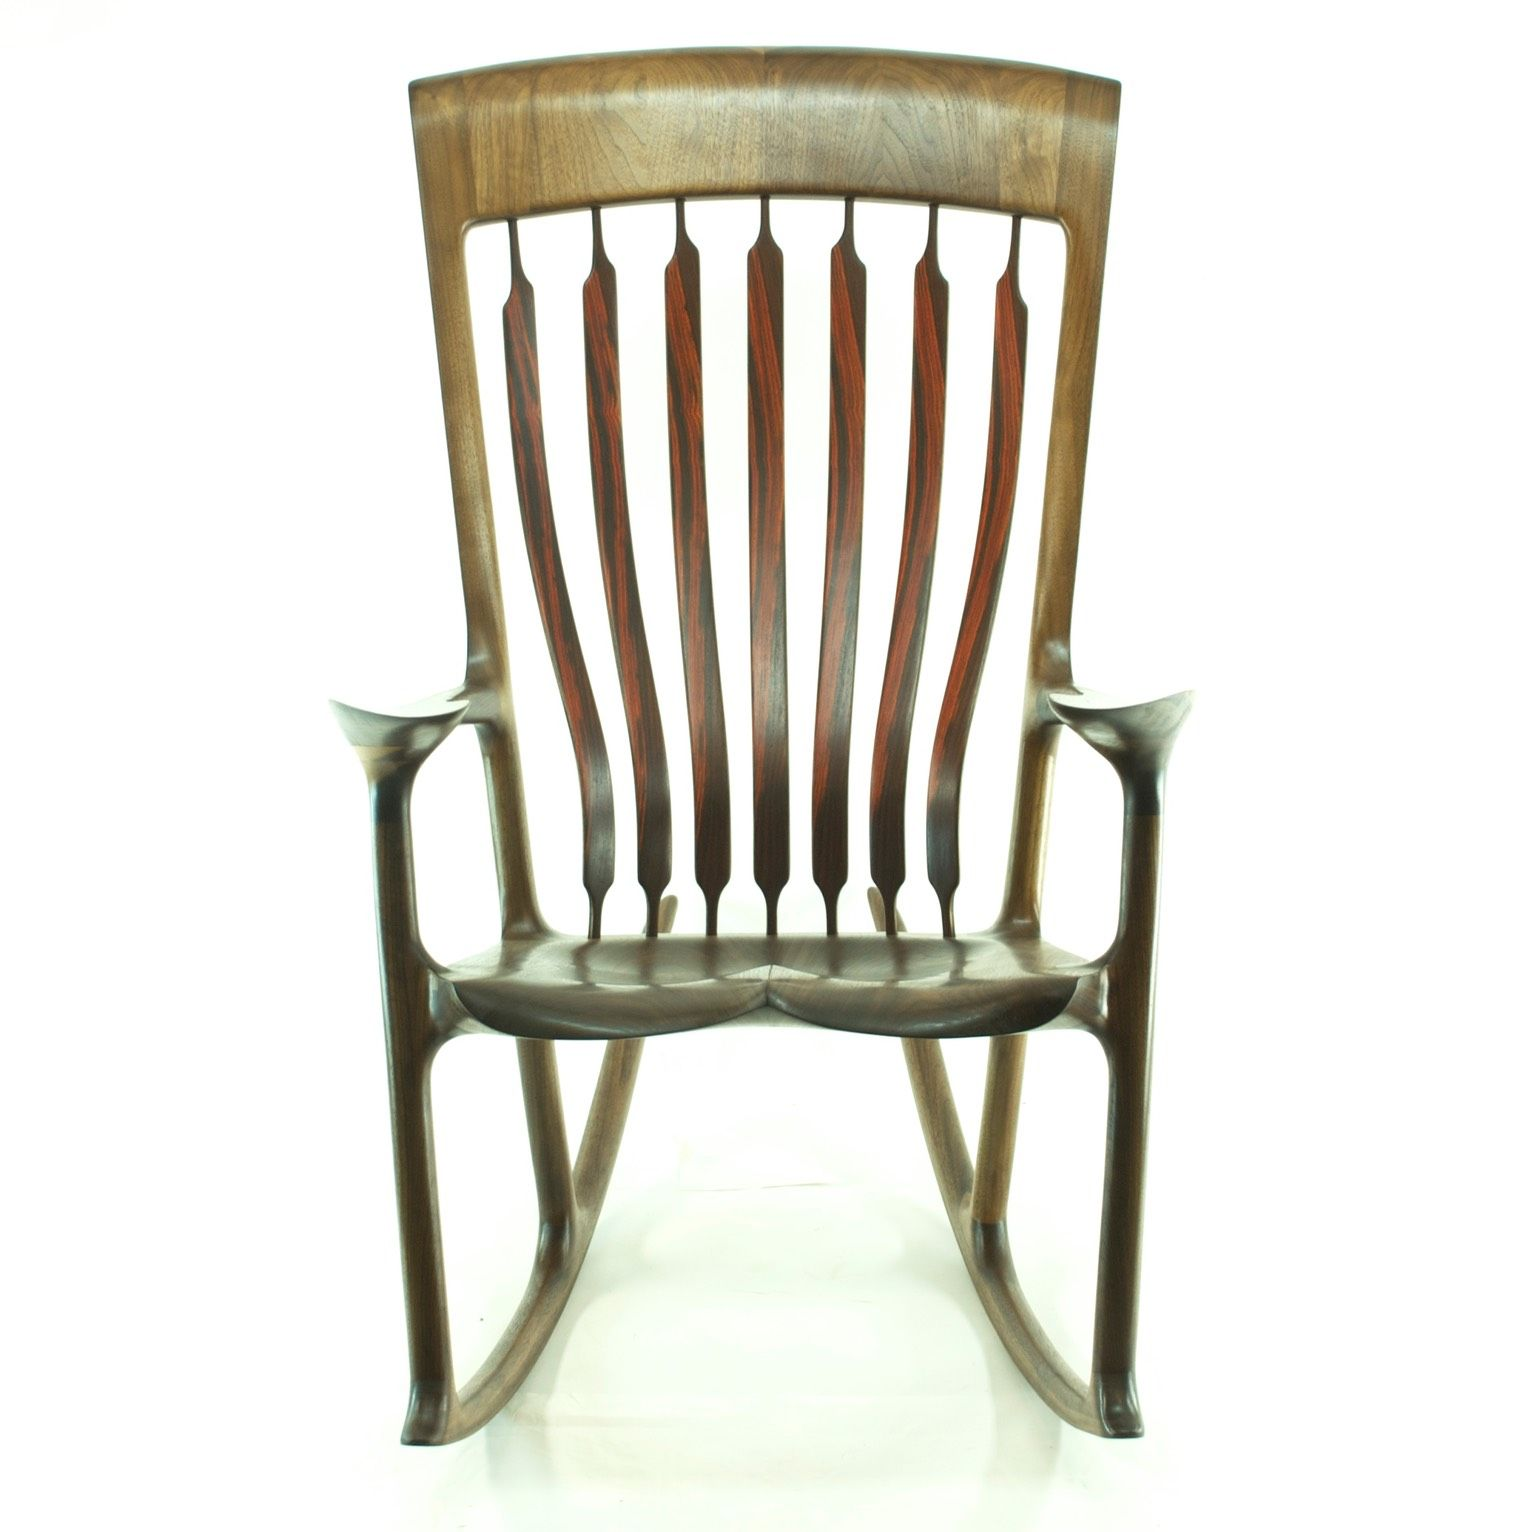 Walnut & Cocobolo Rocking chair, Wooden rocking chairs